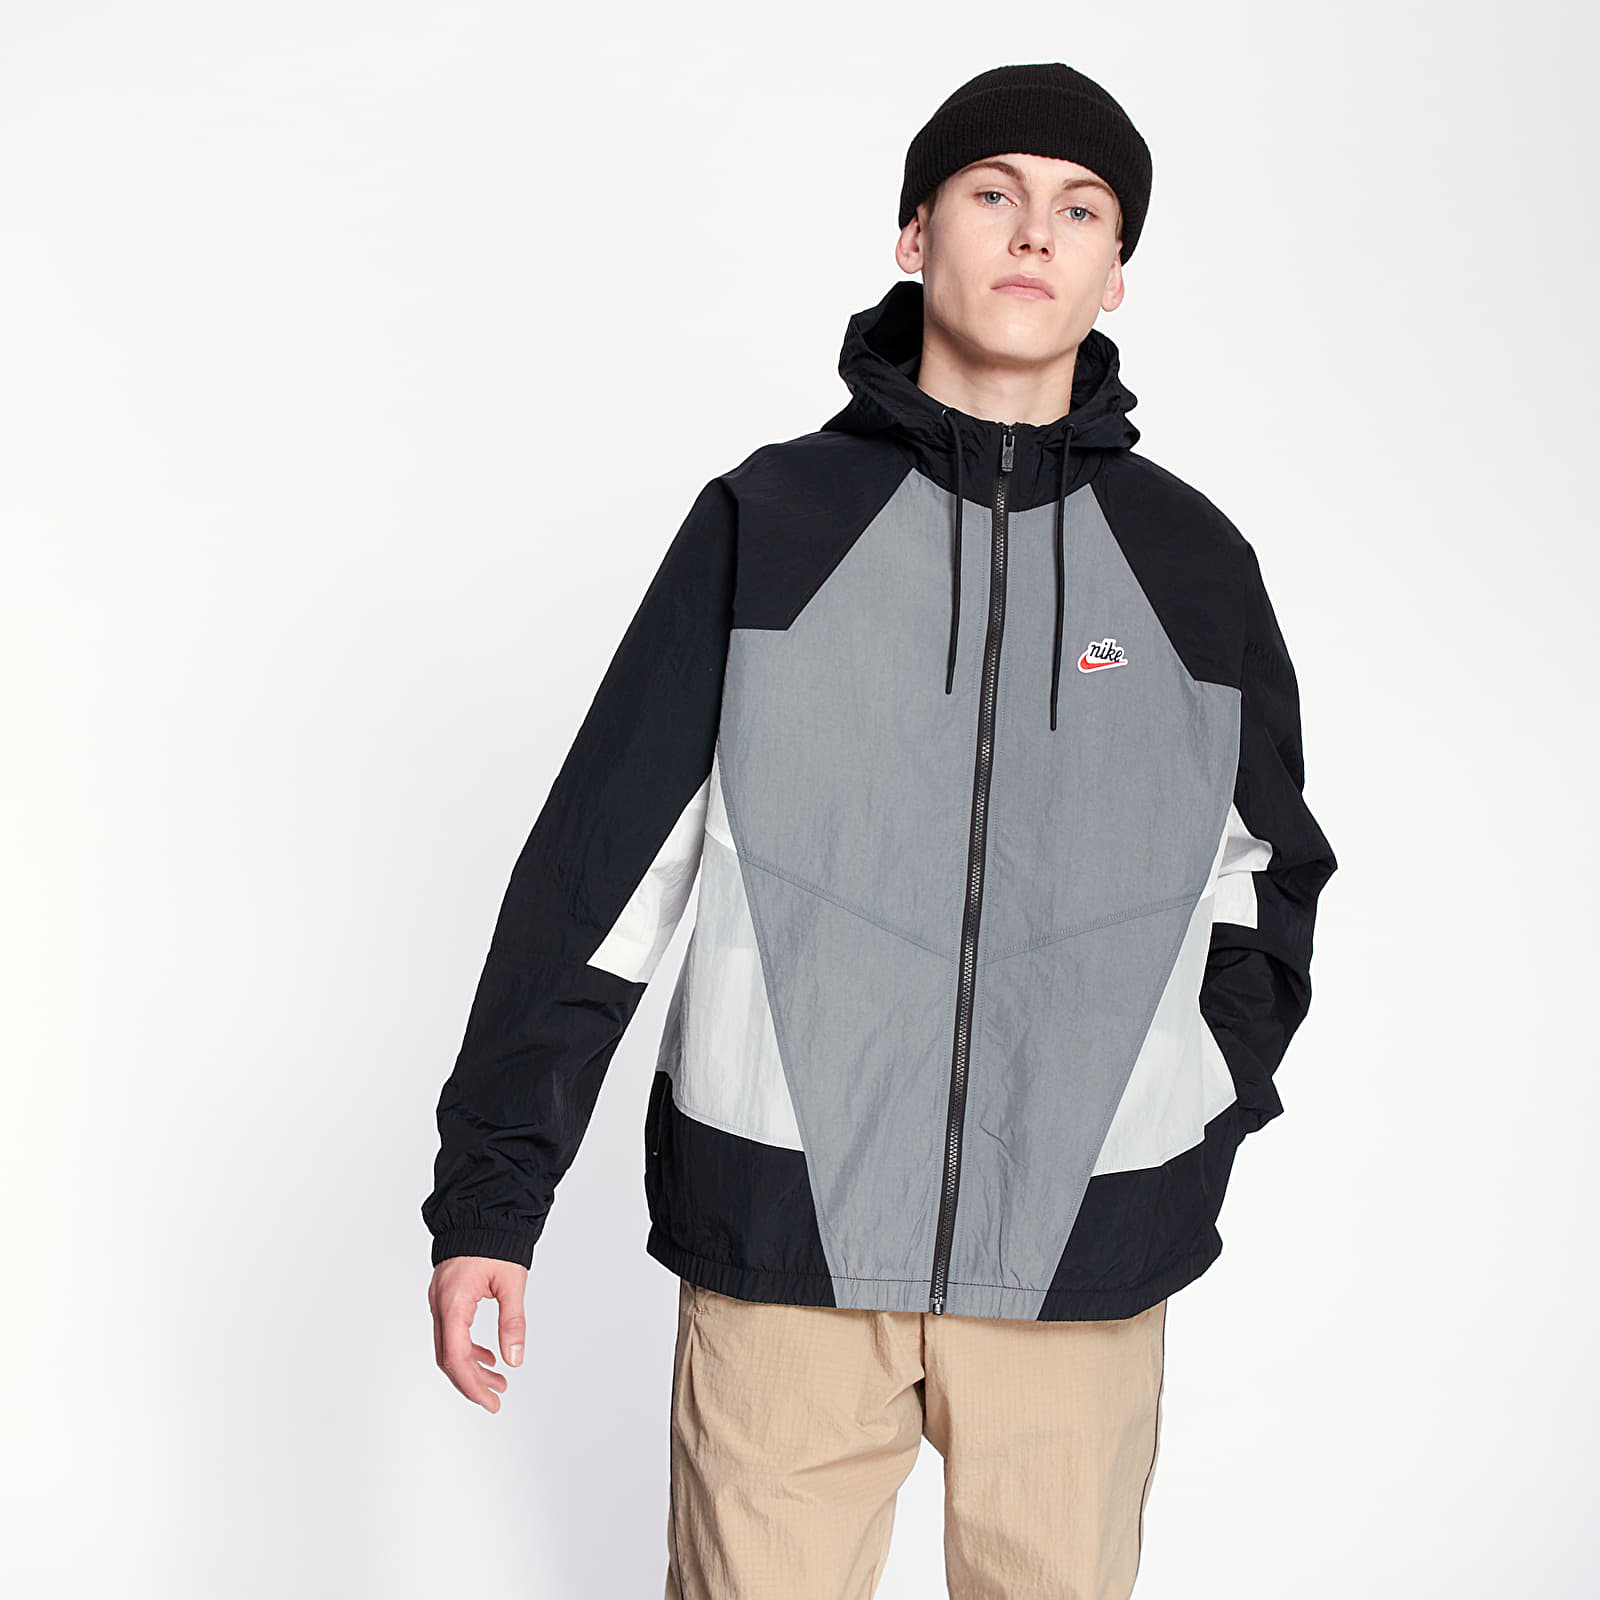 Bundy Nike Sportswear HE Wr Woven Signature Jacket Smoke Grey/ Black/ Light Smoke Grey